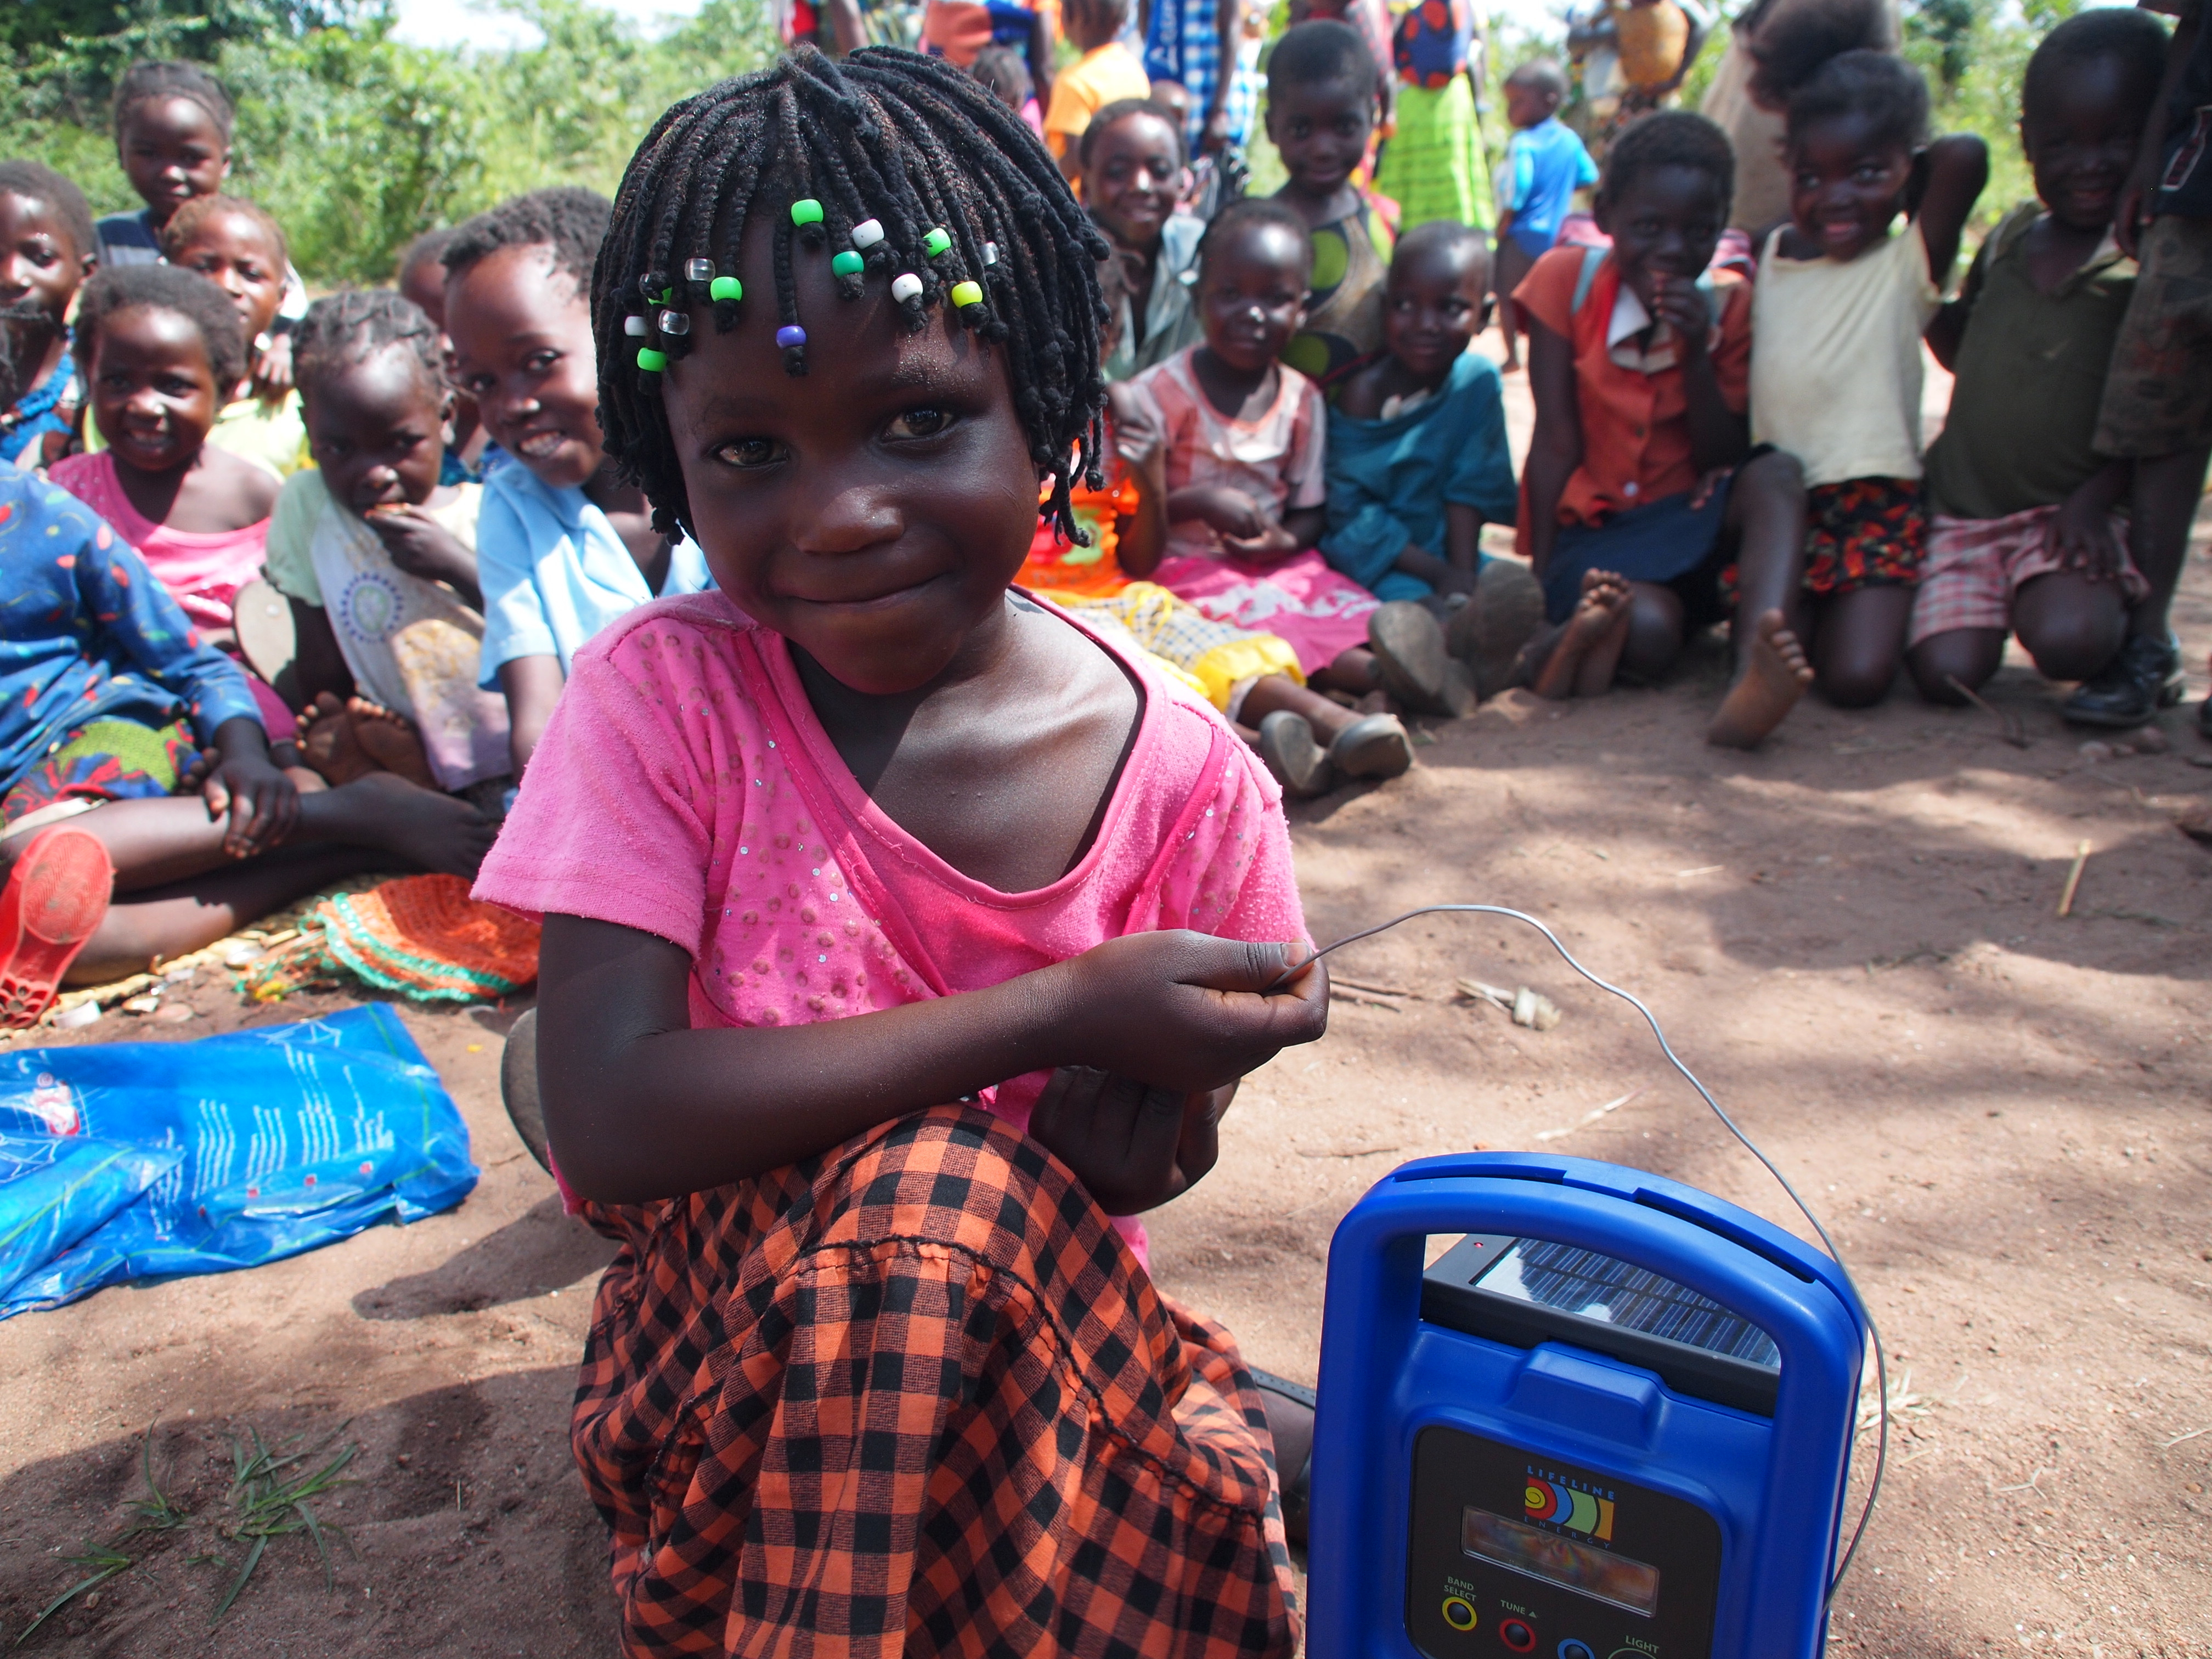 Felicia, an early Taonga Market student, holds one our solar and wind-up radios. The Learning at Taonga Market programme reaches children in rural areas, 35% of which are orphaned.